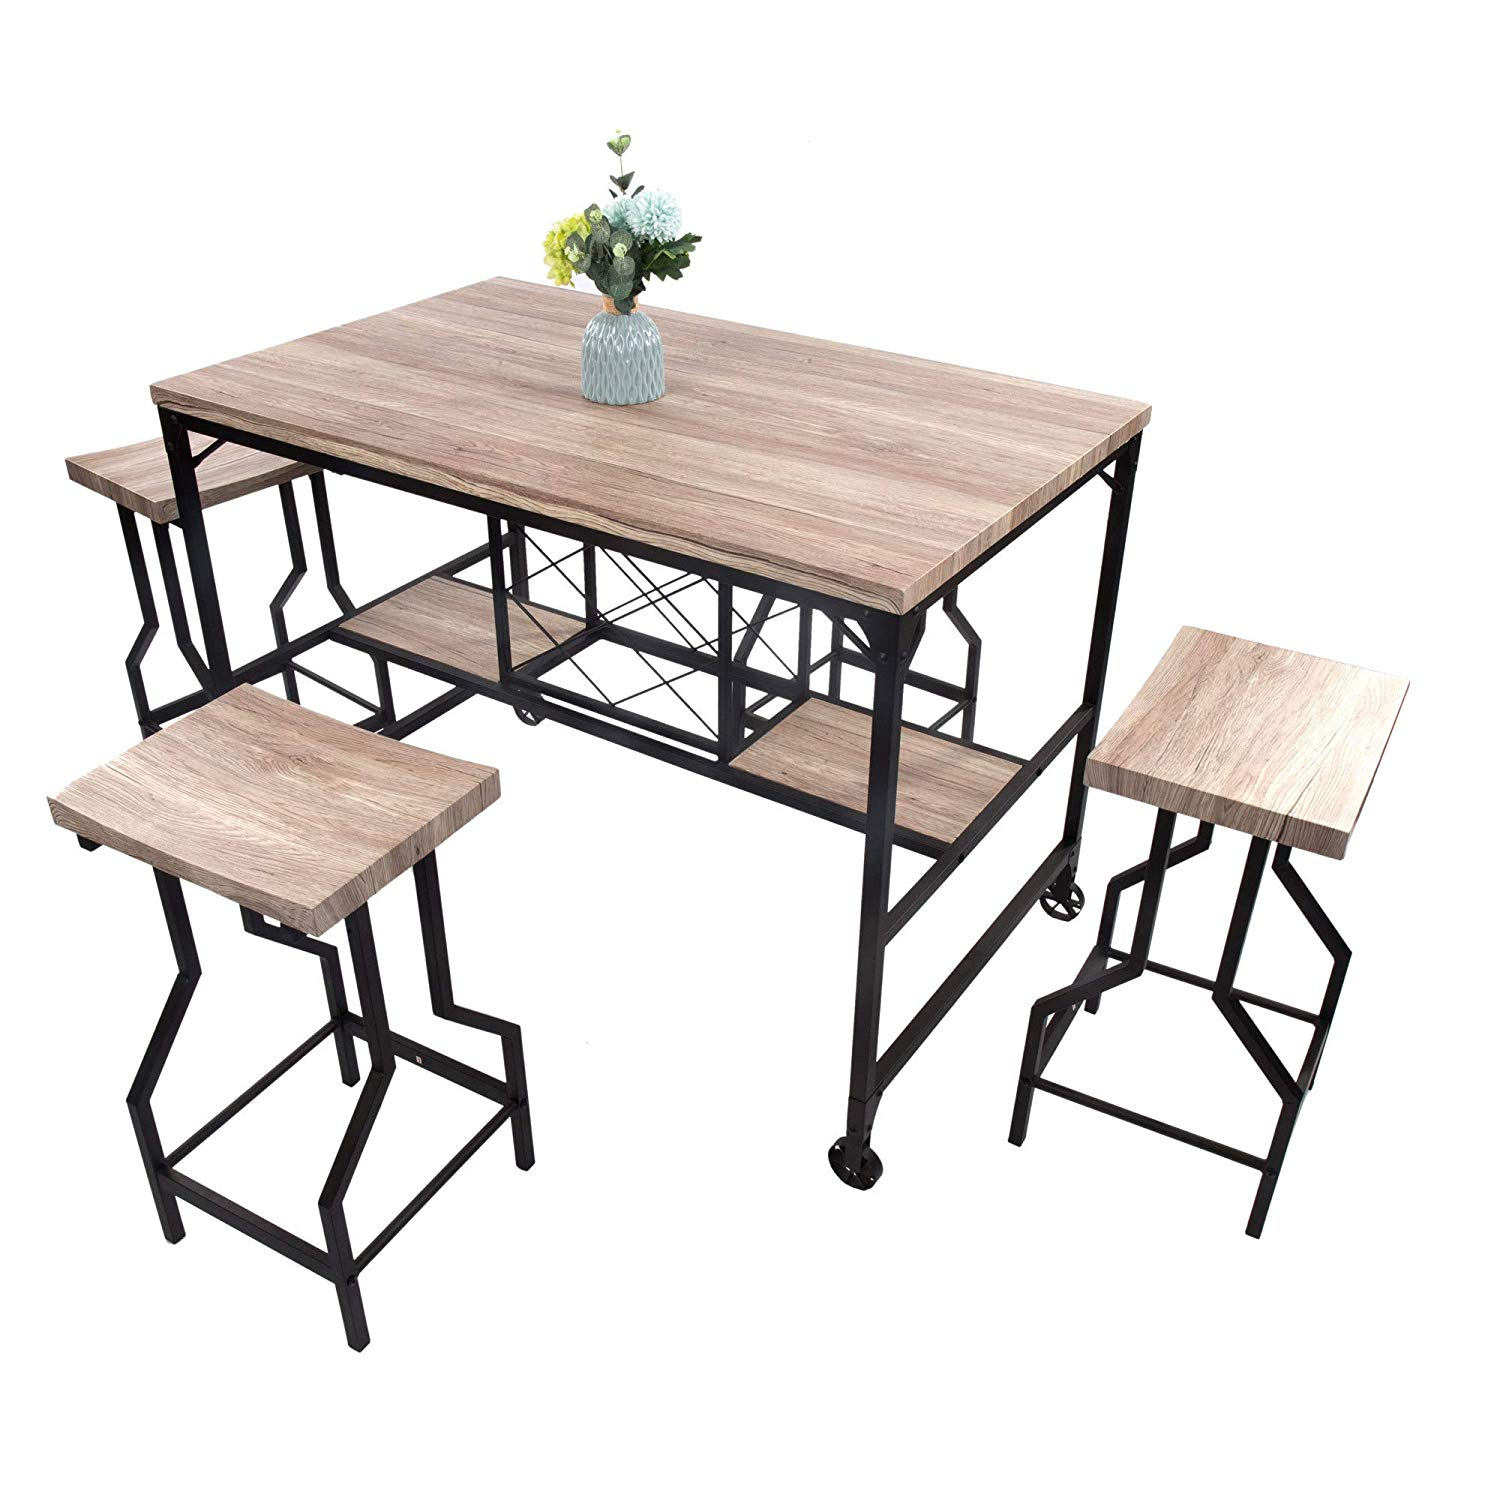 5 Piece Dining Set Industrial Style Wooden Kitchen Restaurant Table And Chairs With Metal Legs Dining Room Sets Aliexpress